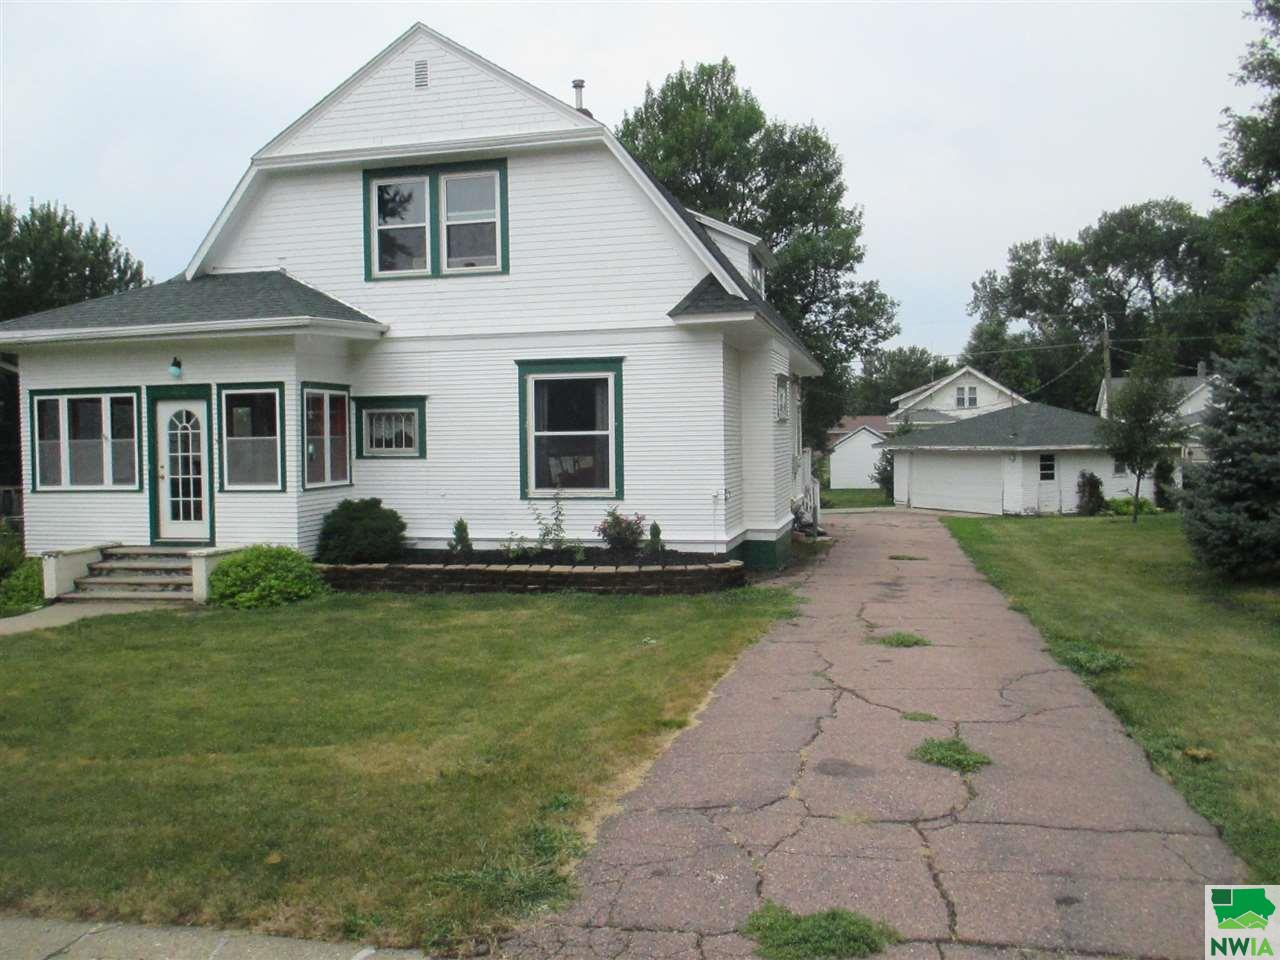 Property for sale at 320 Rutland St., Kingsley,  IA 51028